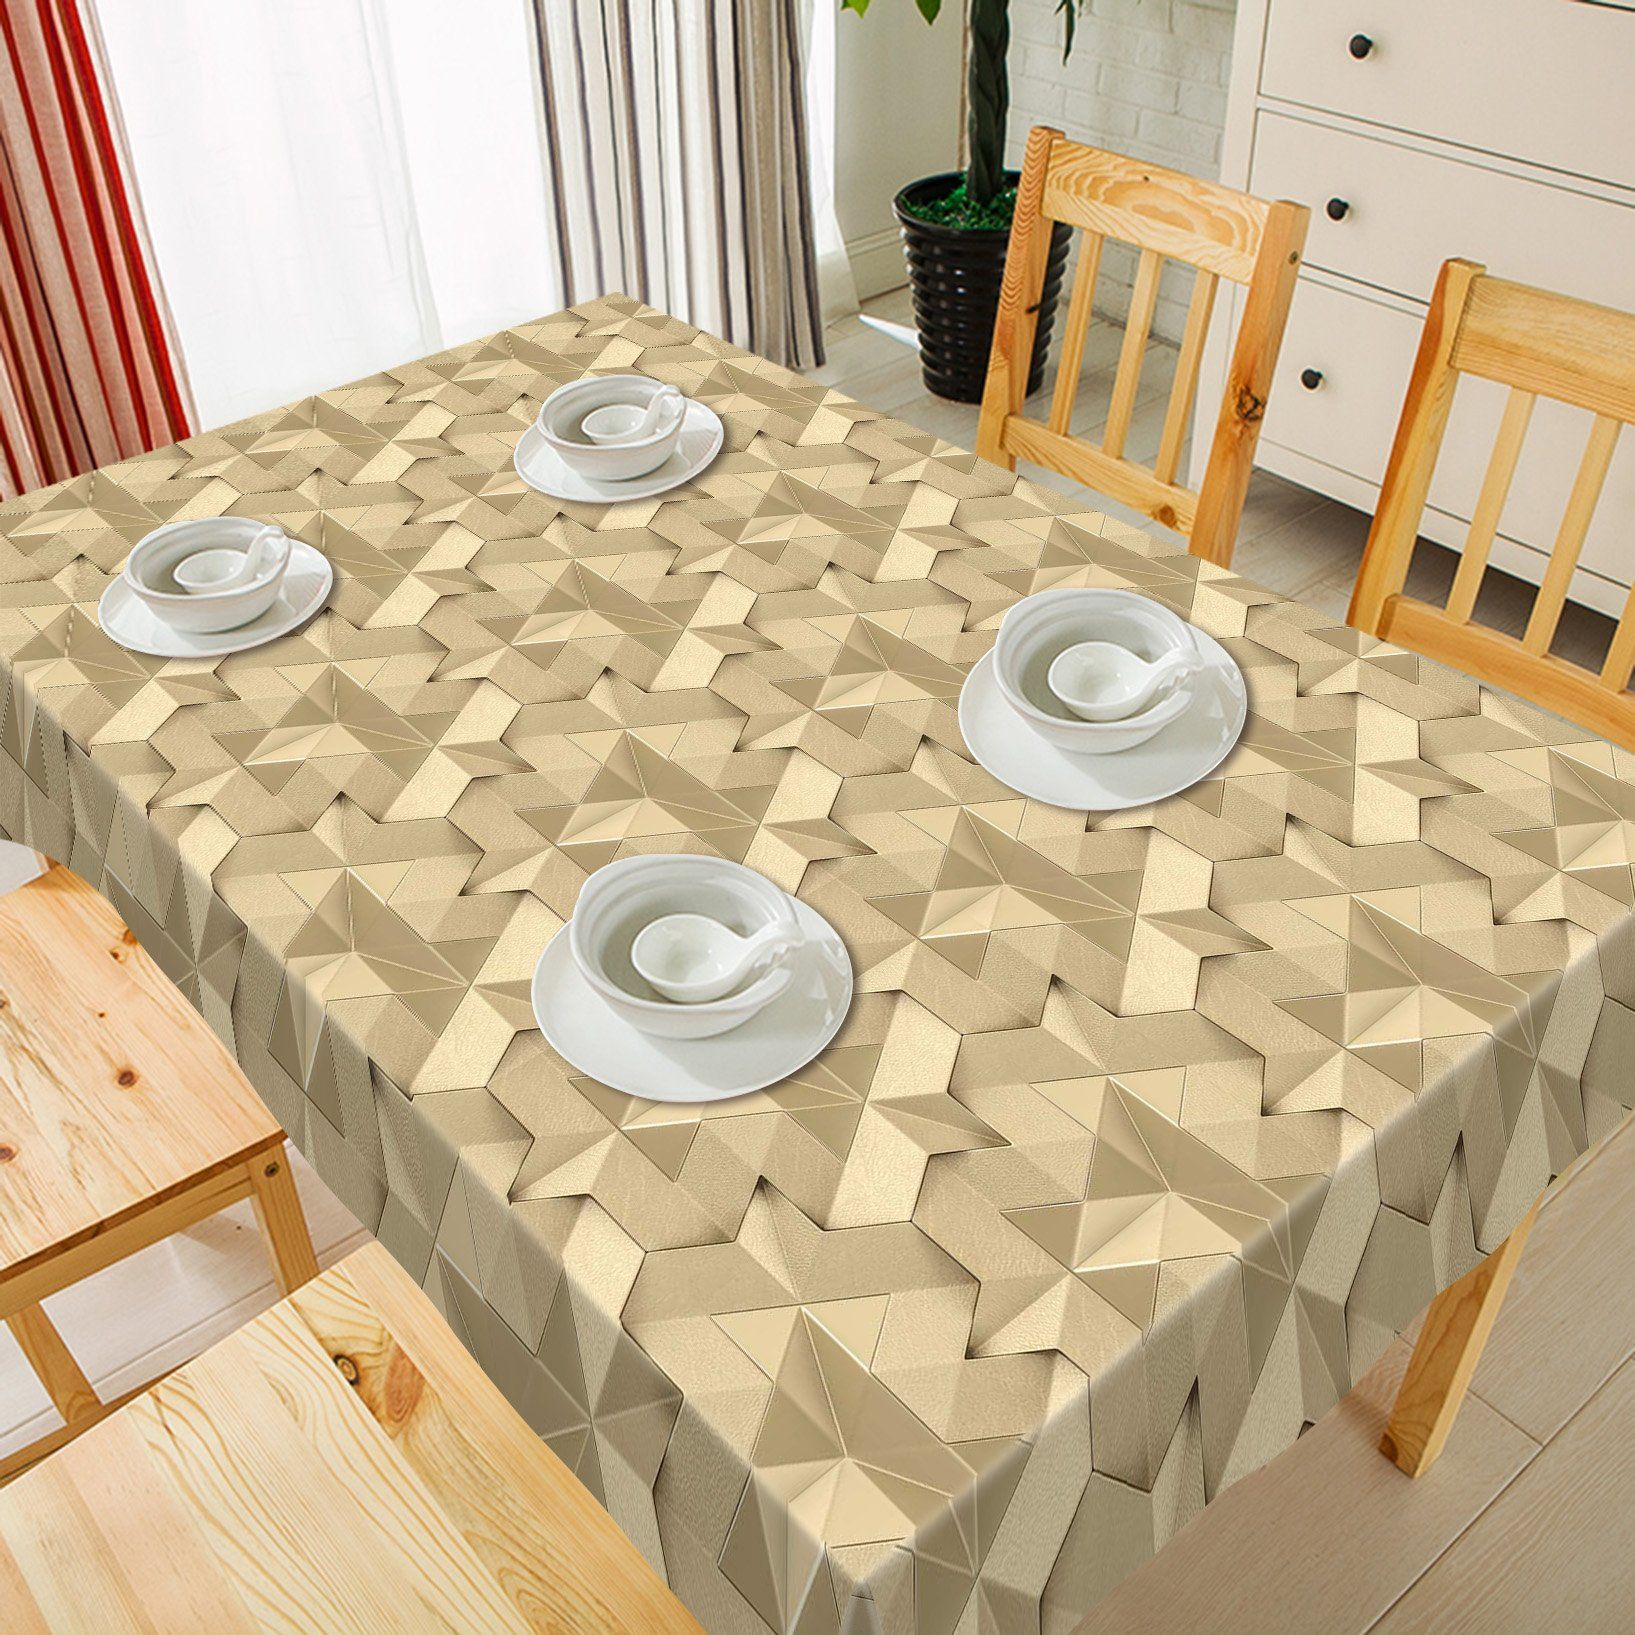 3D Stitching Irregular Patterns 79 Tablecloths Wallpaper AJ Wallpaper